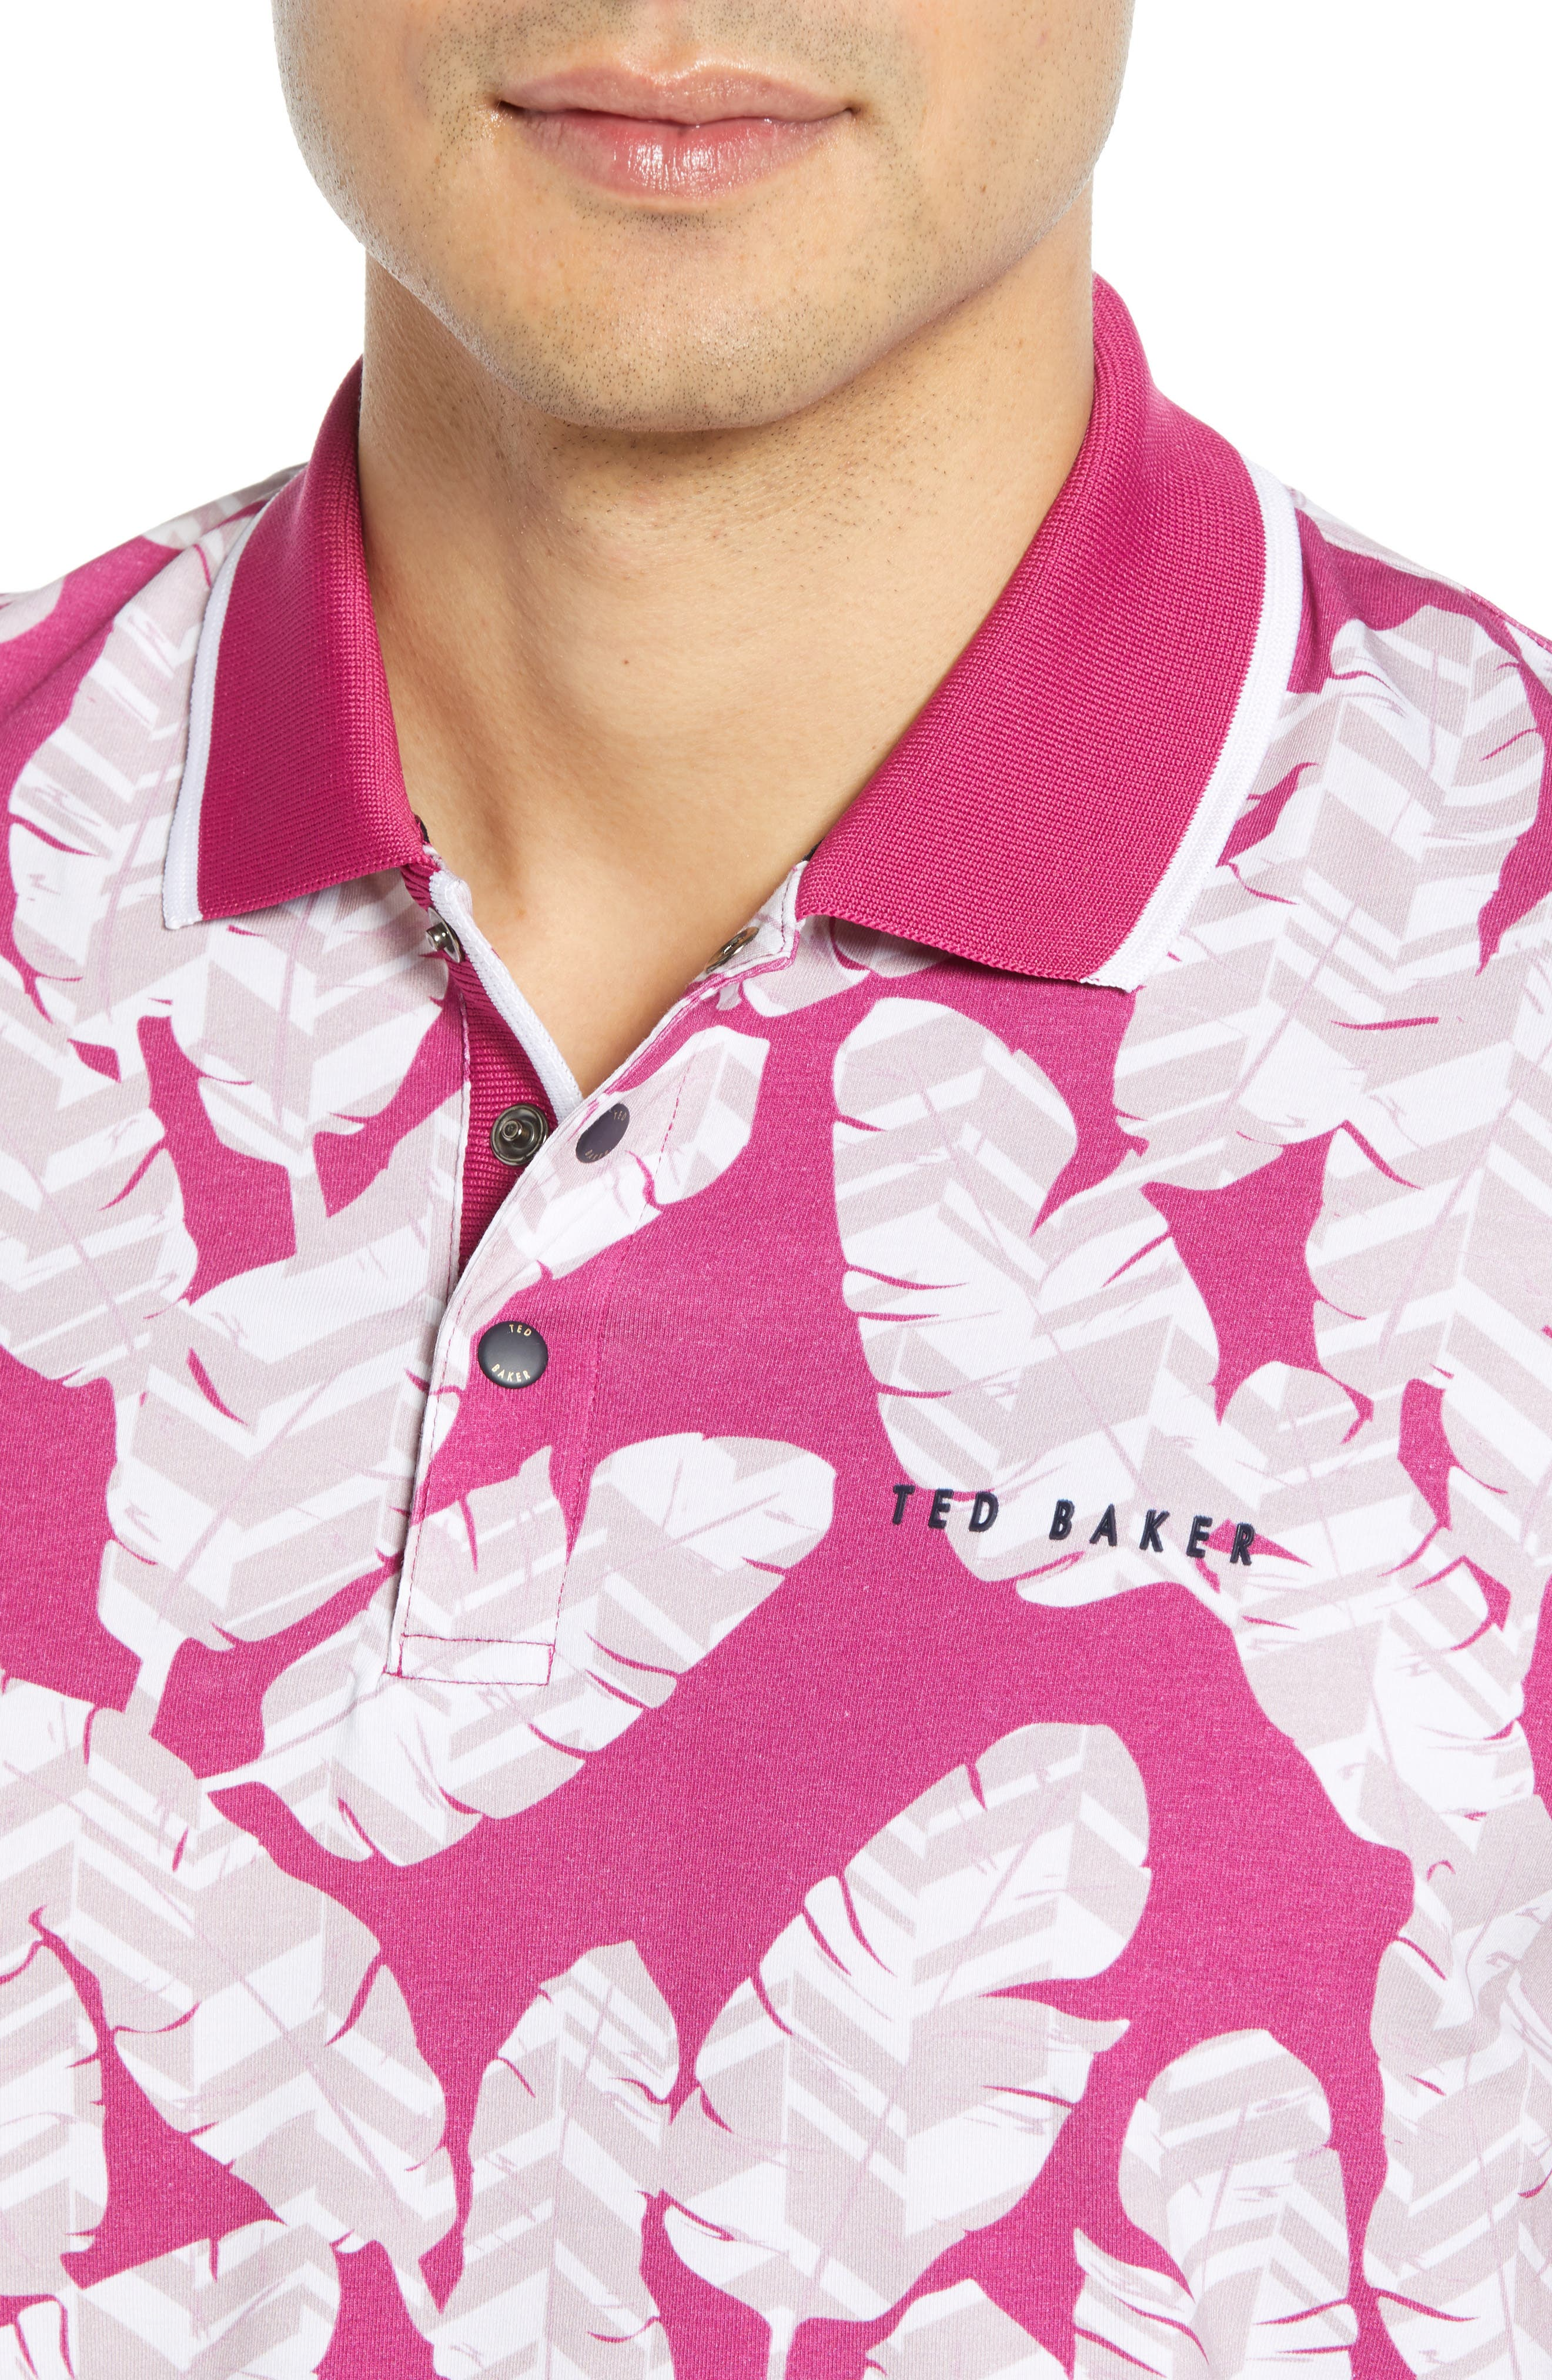 TED BAKER LONDON, Peacan Golf Polo, Alternate thumbnail 4, color, PINK